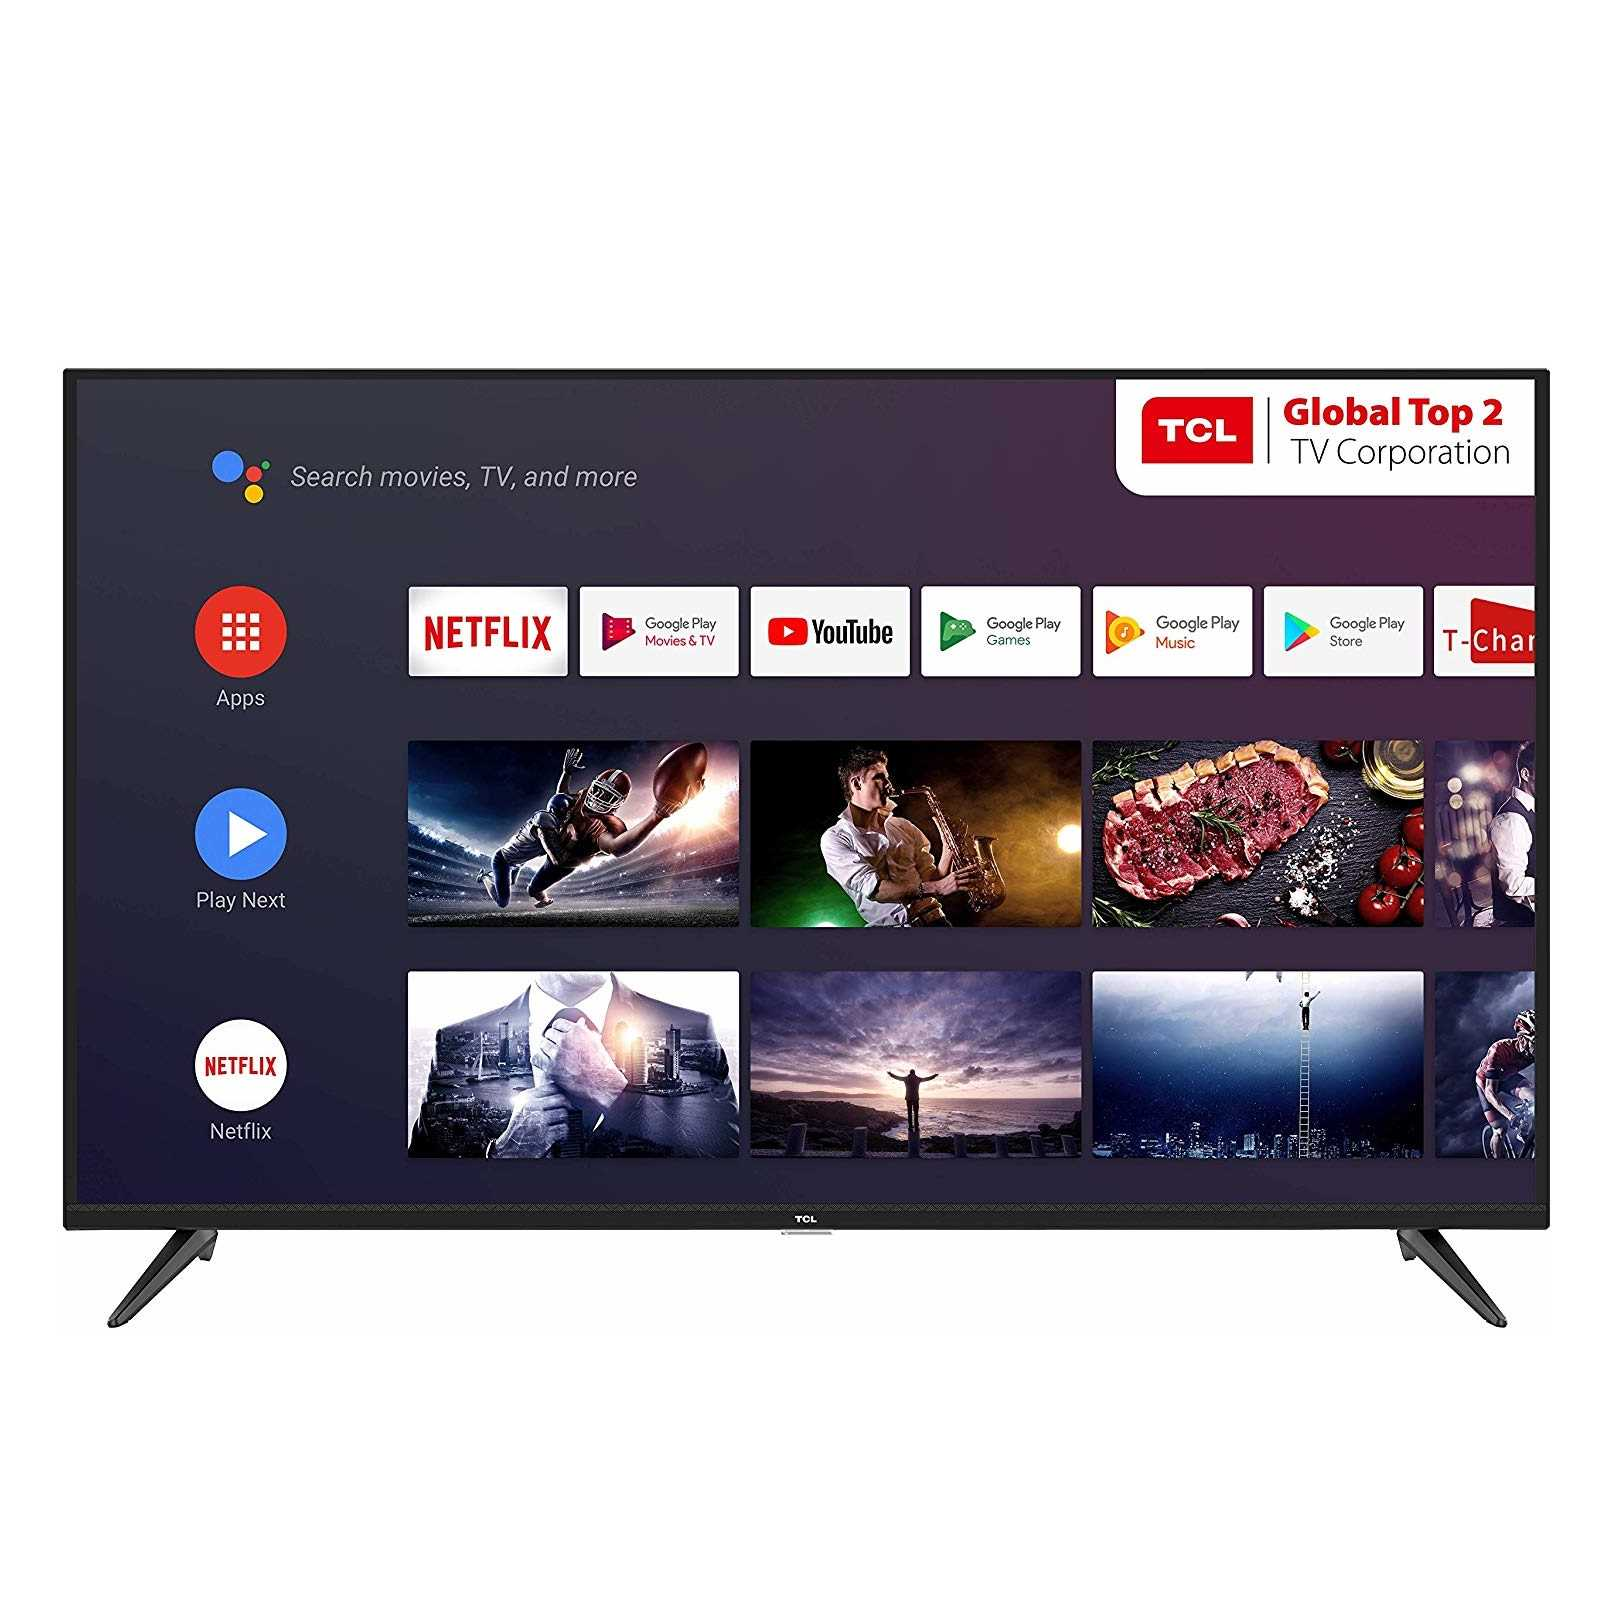 TCL 43P8 43 Inch 4K Ultra HD Smart Android LED Television